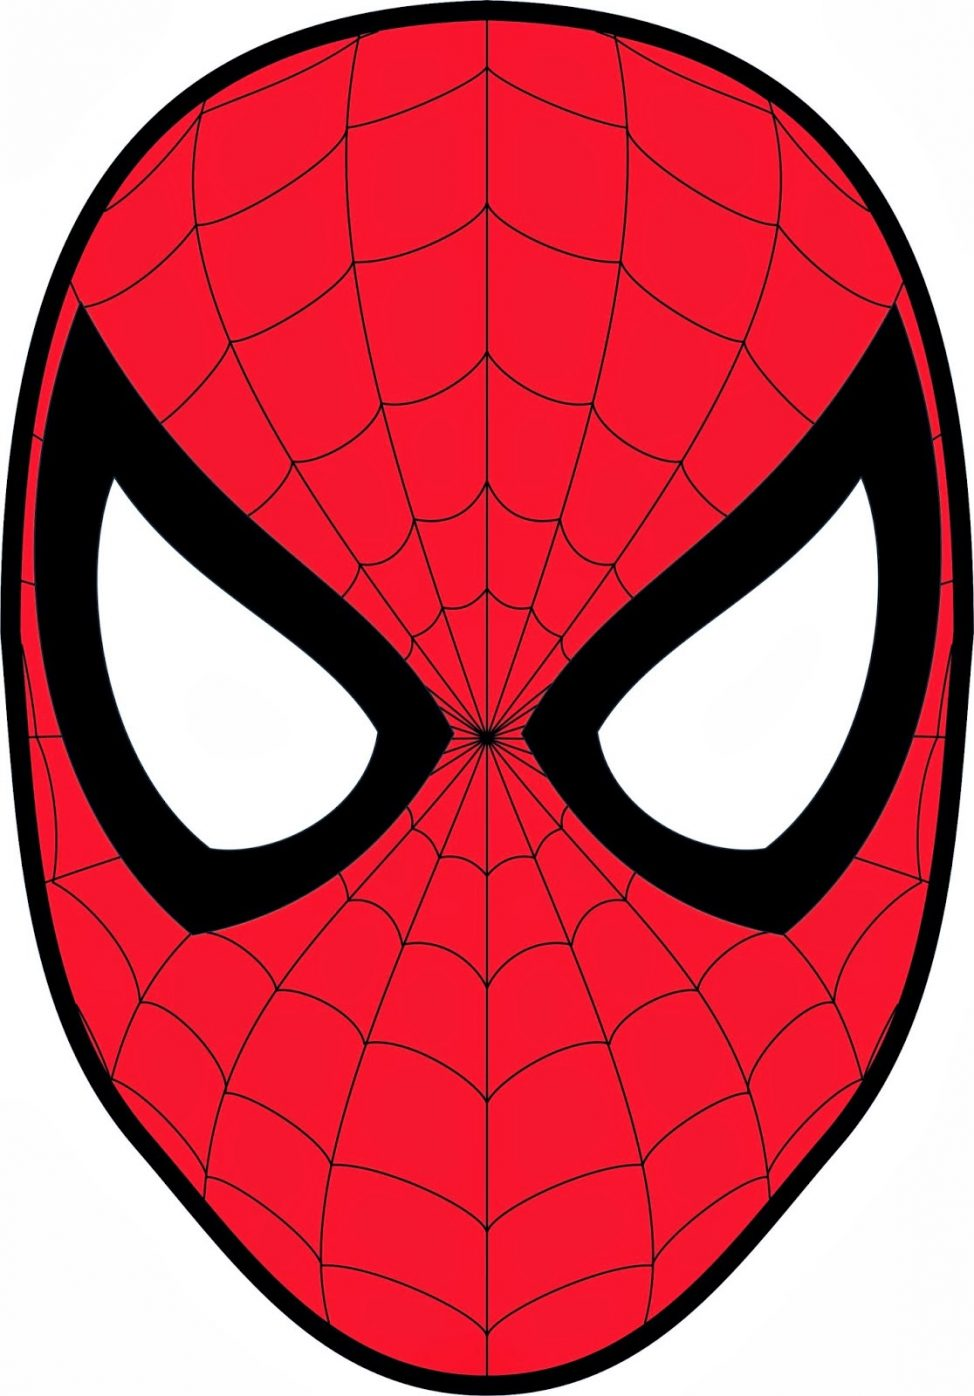 974x1396 Coloring Pages Cartoon Spiderman Face Coloring Pages Cartoon